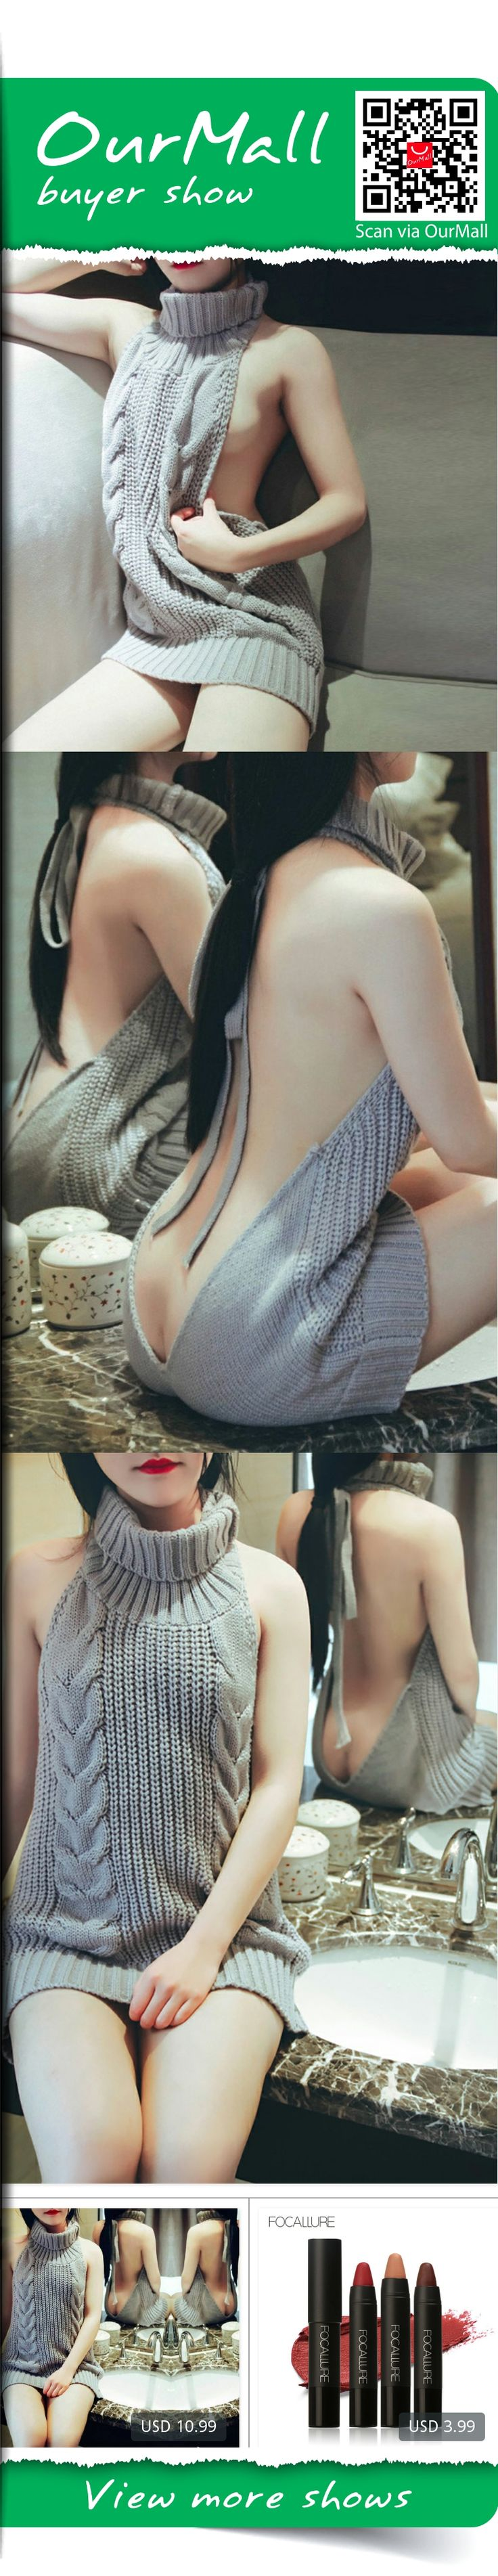 2017 Hot Backless Sexy Sweater Women Tops Female Turtleneck Knitted Sweaters New Spring Autumn Women Knitwear Sweater Pullovers buyer show, , http://ourmall.com/r/zQ7Nrq #shirt #Tshirt #jeans #bag #women #top #dress #skirt #cap #sunglass #denim #pant #shortsleeve #spring #fashion #sweater #ring #belt #female #lookbook #outoftheday #ootd #outfit #pant #hat #necklace #shorts #shoes #heel #jacket #coat #outerwear #flat #handbag #crossbag #clothes